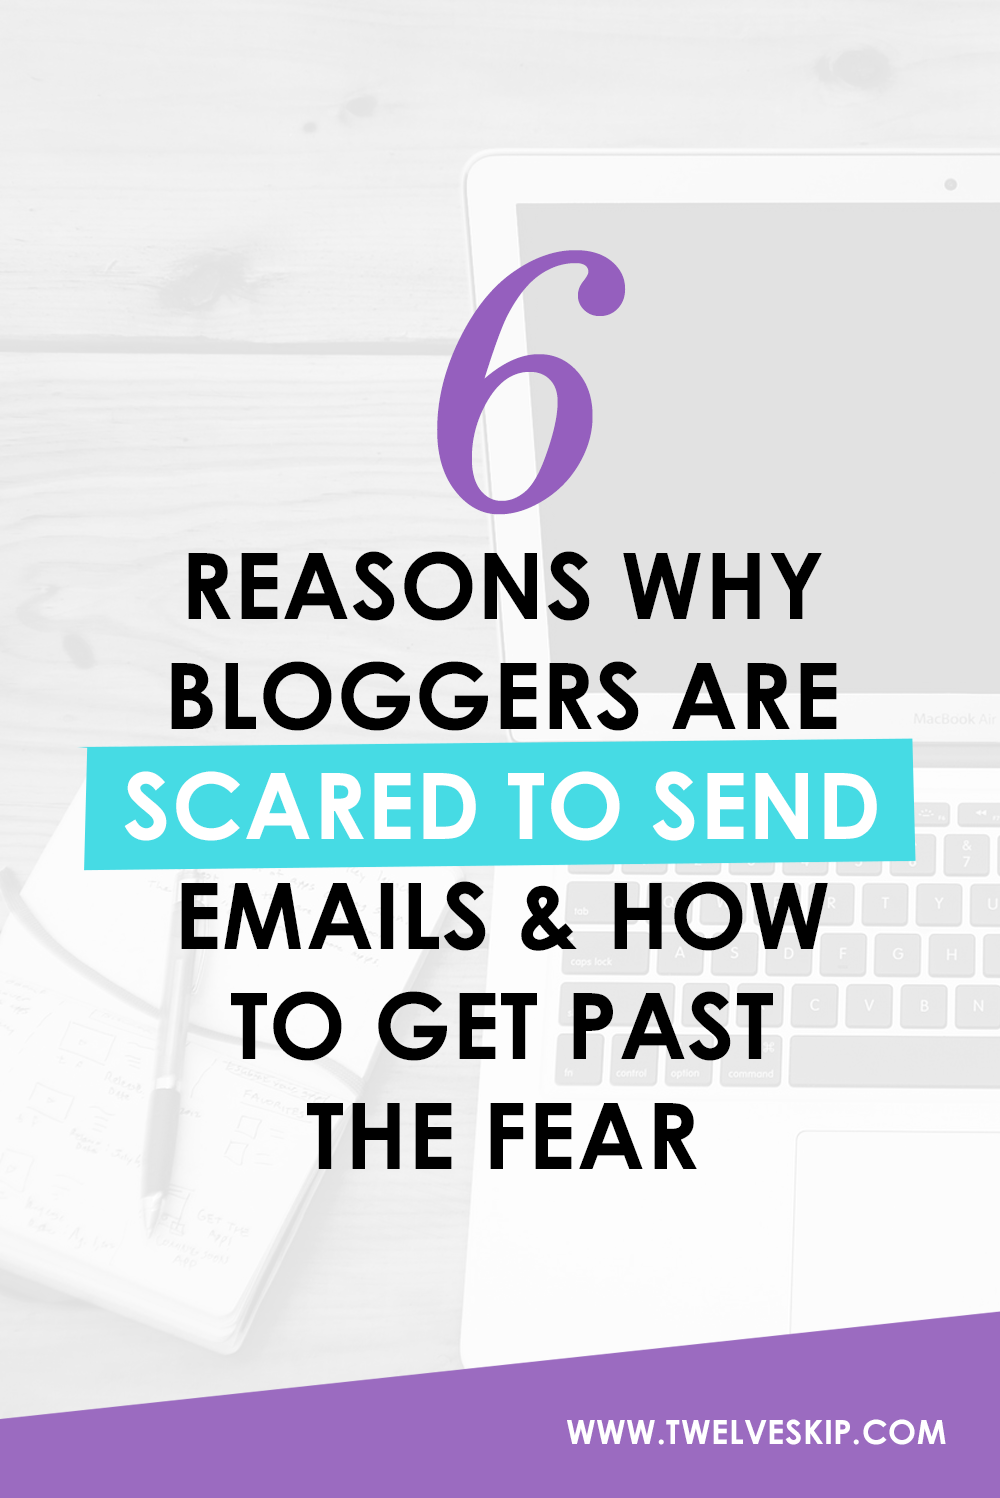 6 Reasons Why Bloggers Are Scared To Send Emails And How To Get Past The Fear